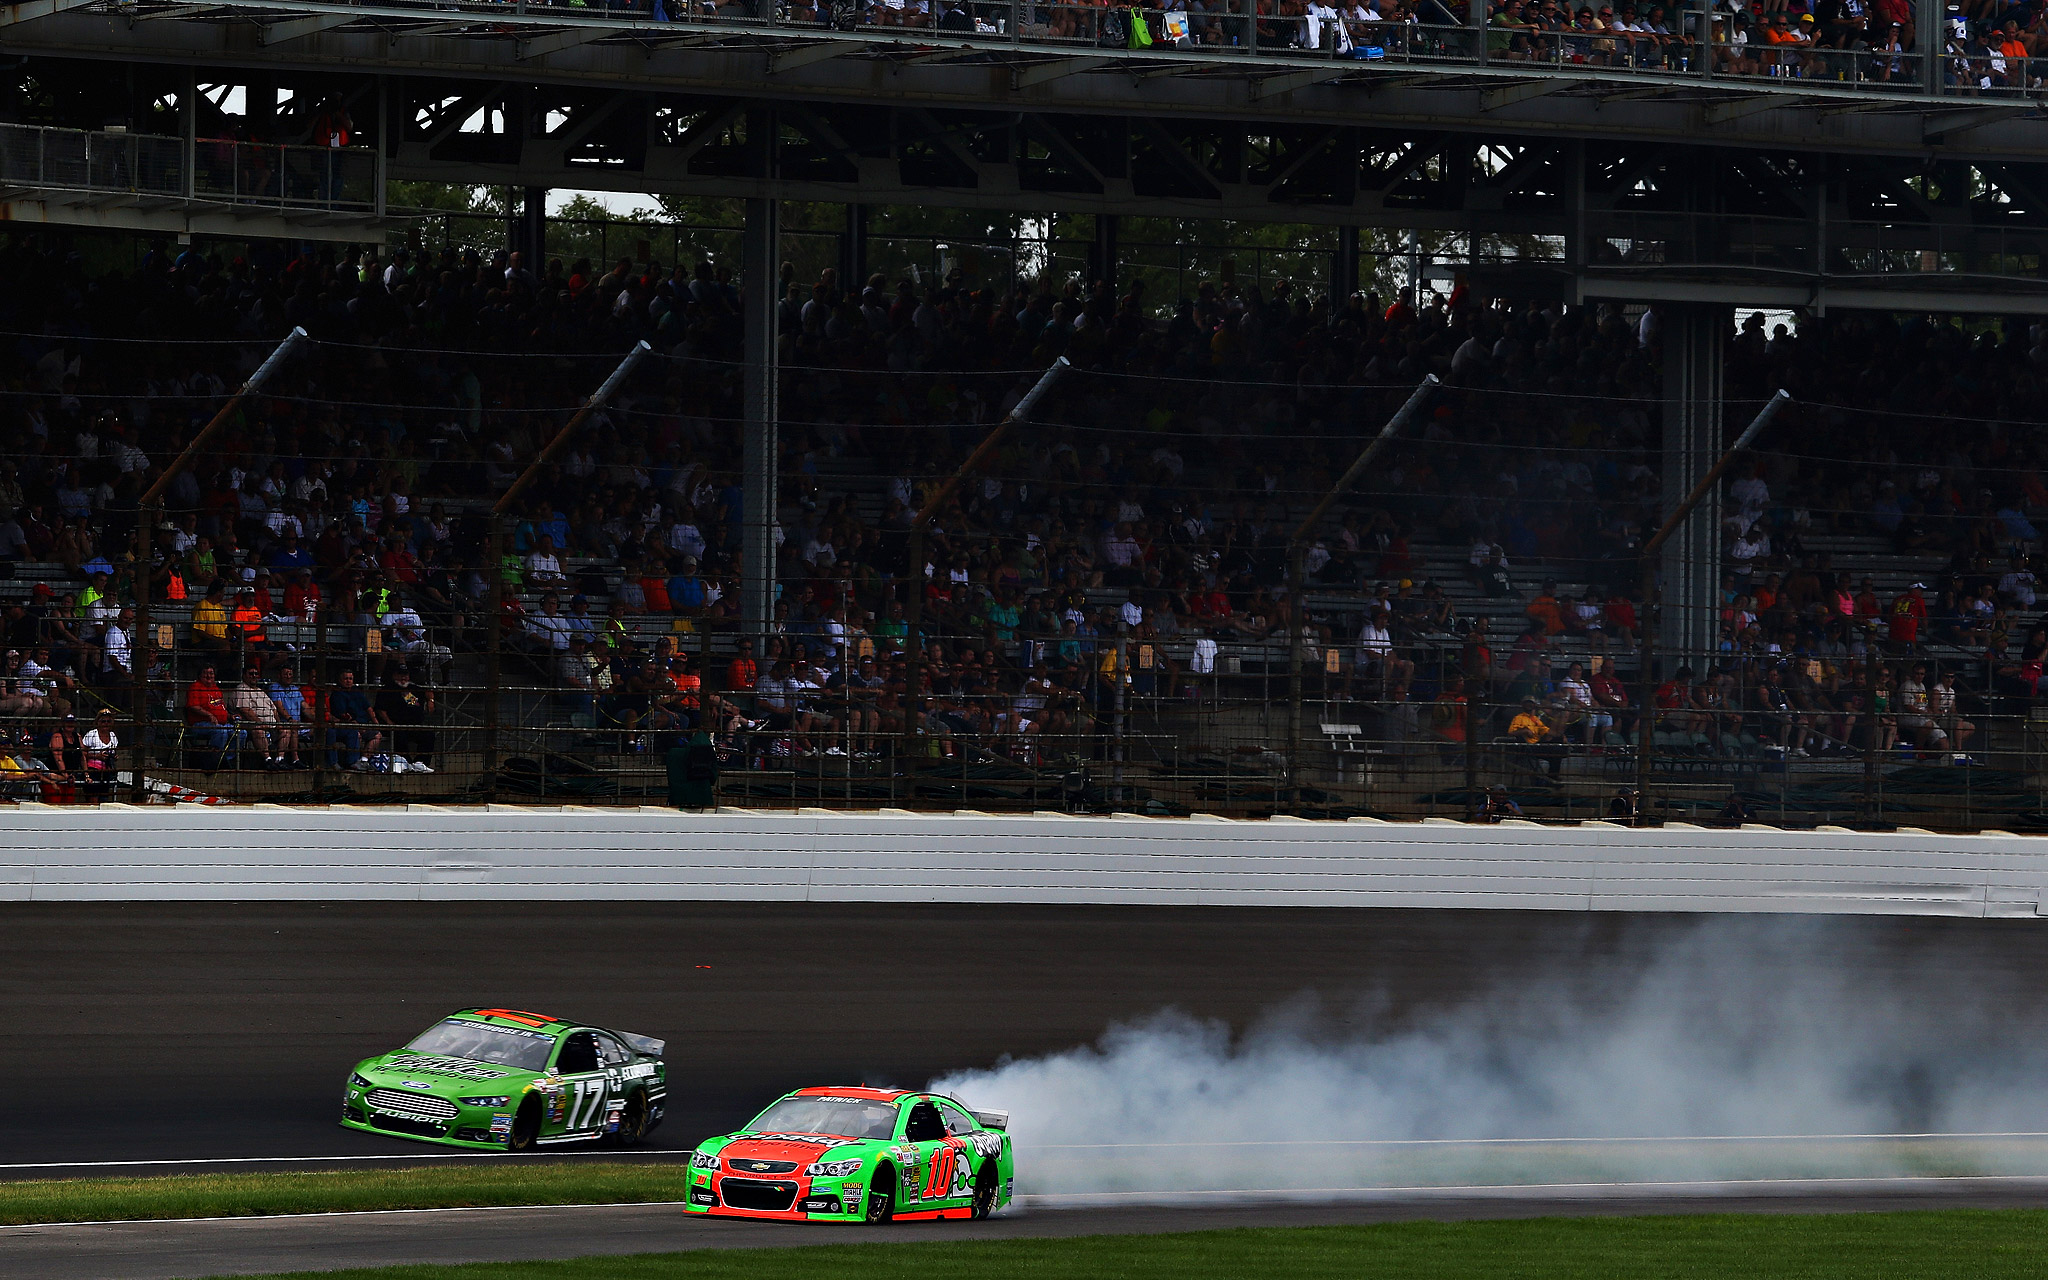 Smoke pours from the No. 10 GoDaddy Chevrolet, driven by Danica Patrick, on her way back to the pits during the NASCAR Sprint Cup Series Brickyard 400 in Indianapolis.